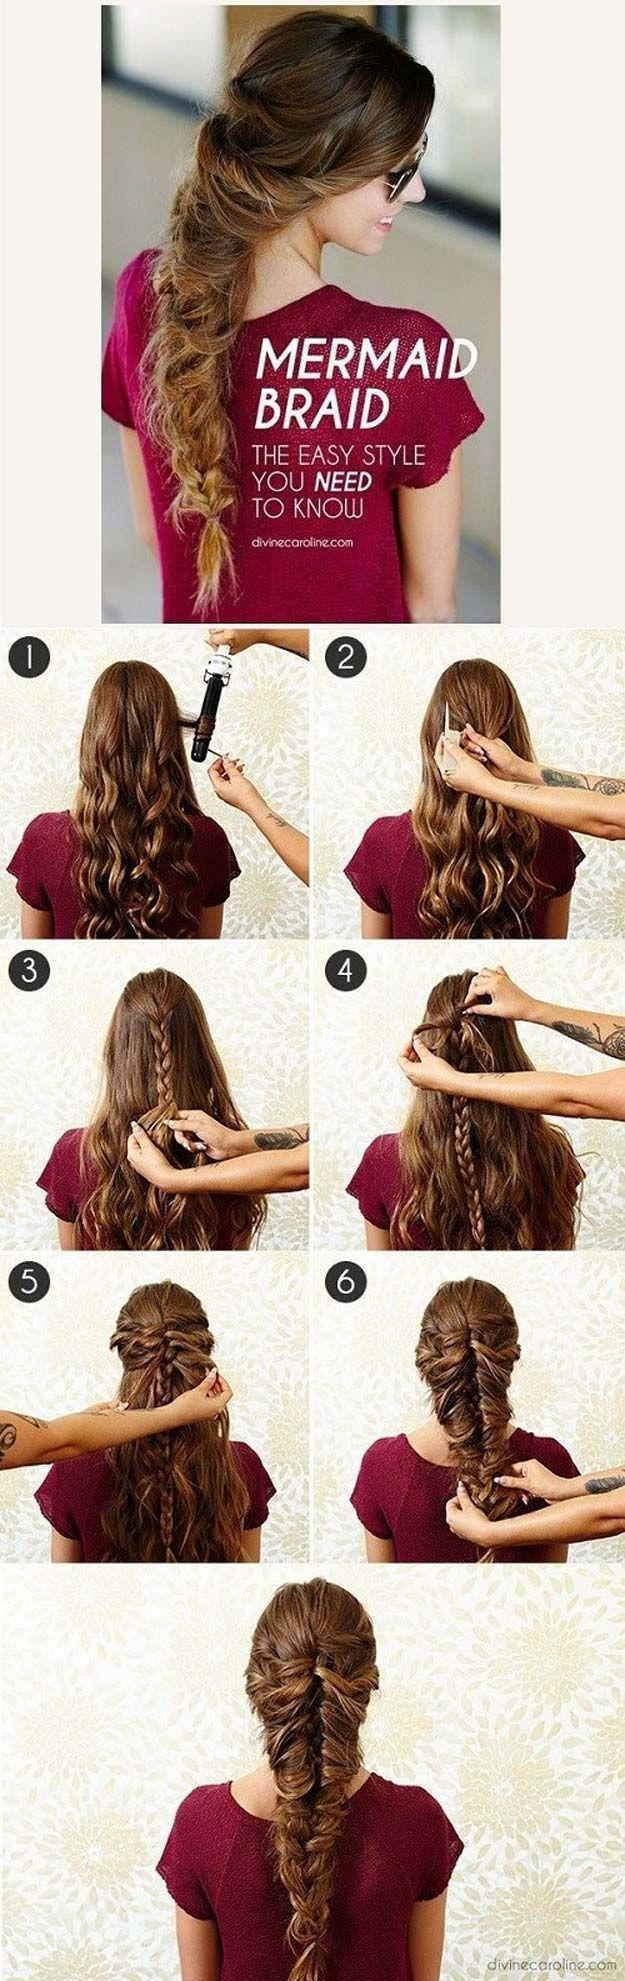 Best hair braiding tutorials mermaid braid easy step by step